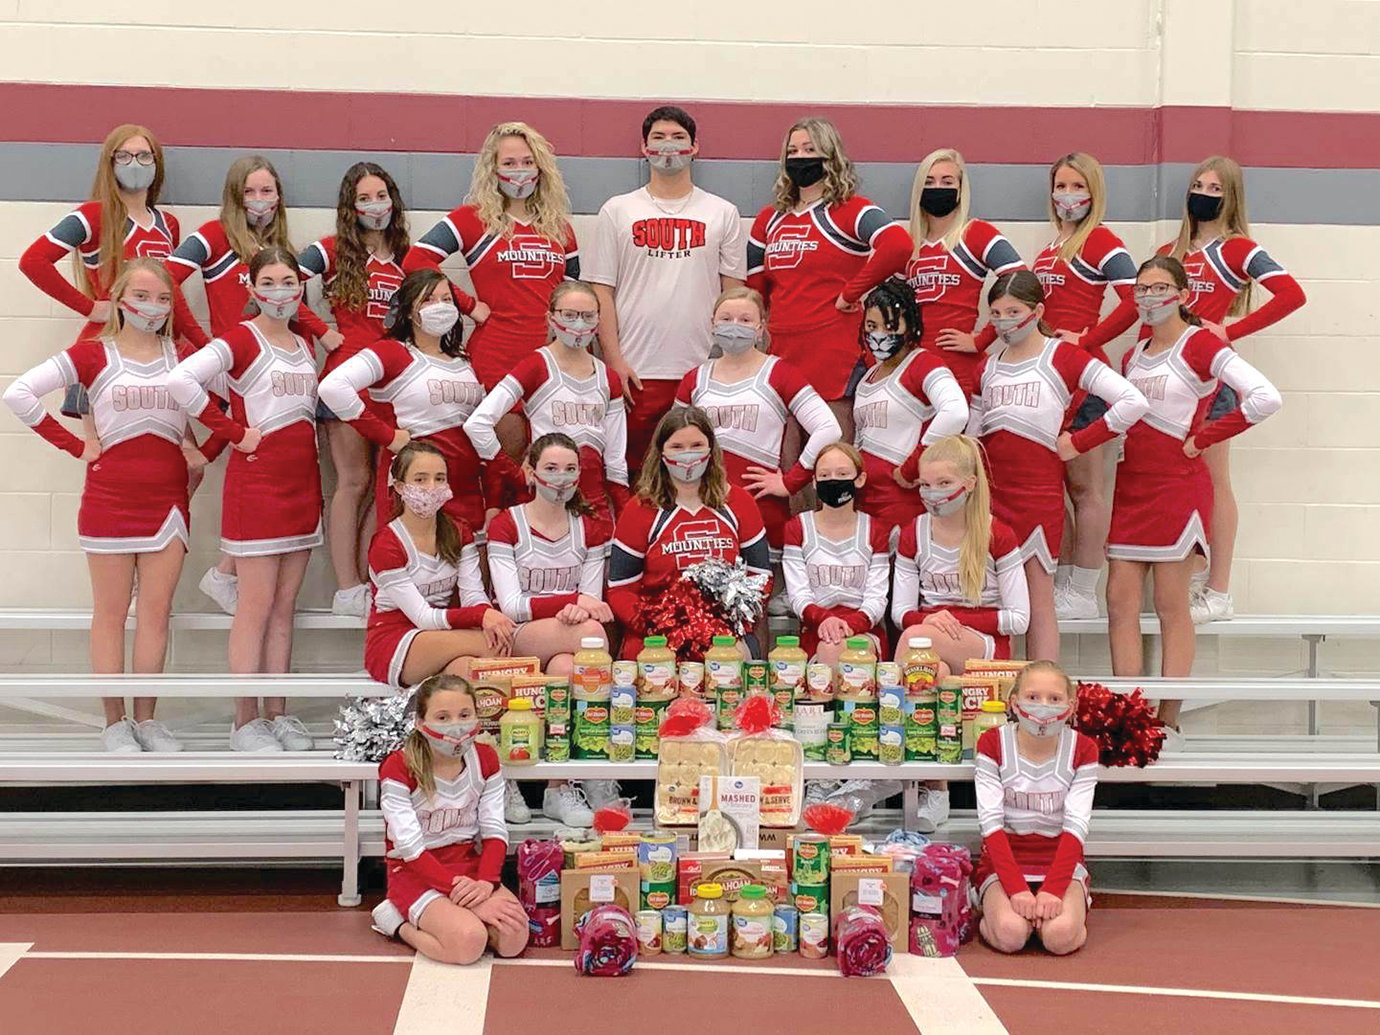 The Southmont cheerleading squad poses for a photo ahead of delivering traditional Thanksgiving meal ingredients to the organizers of the Community Thanksgiving Dinner.